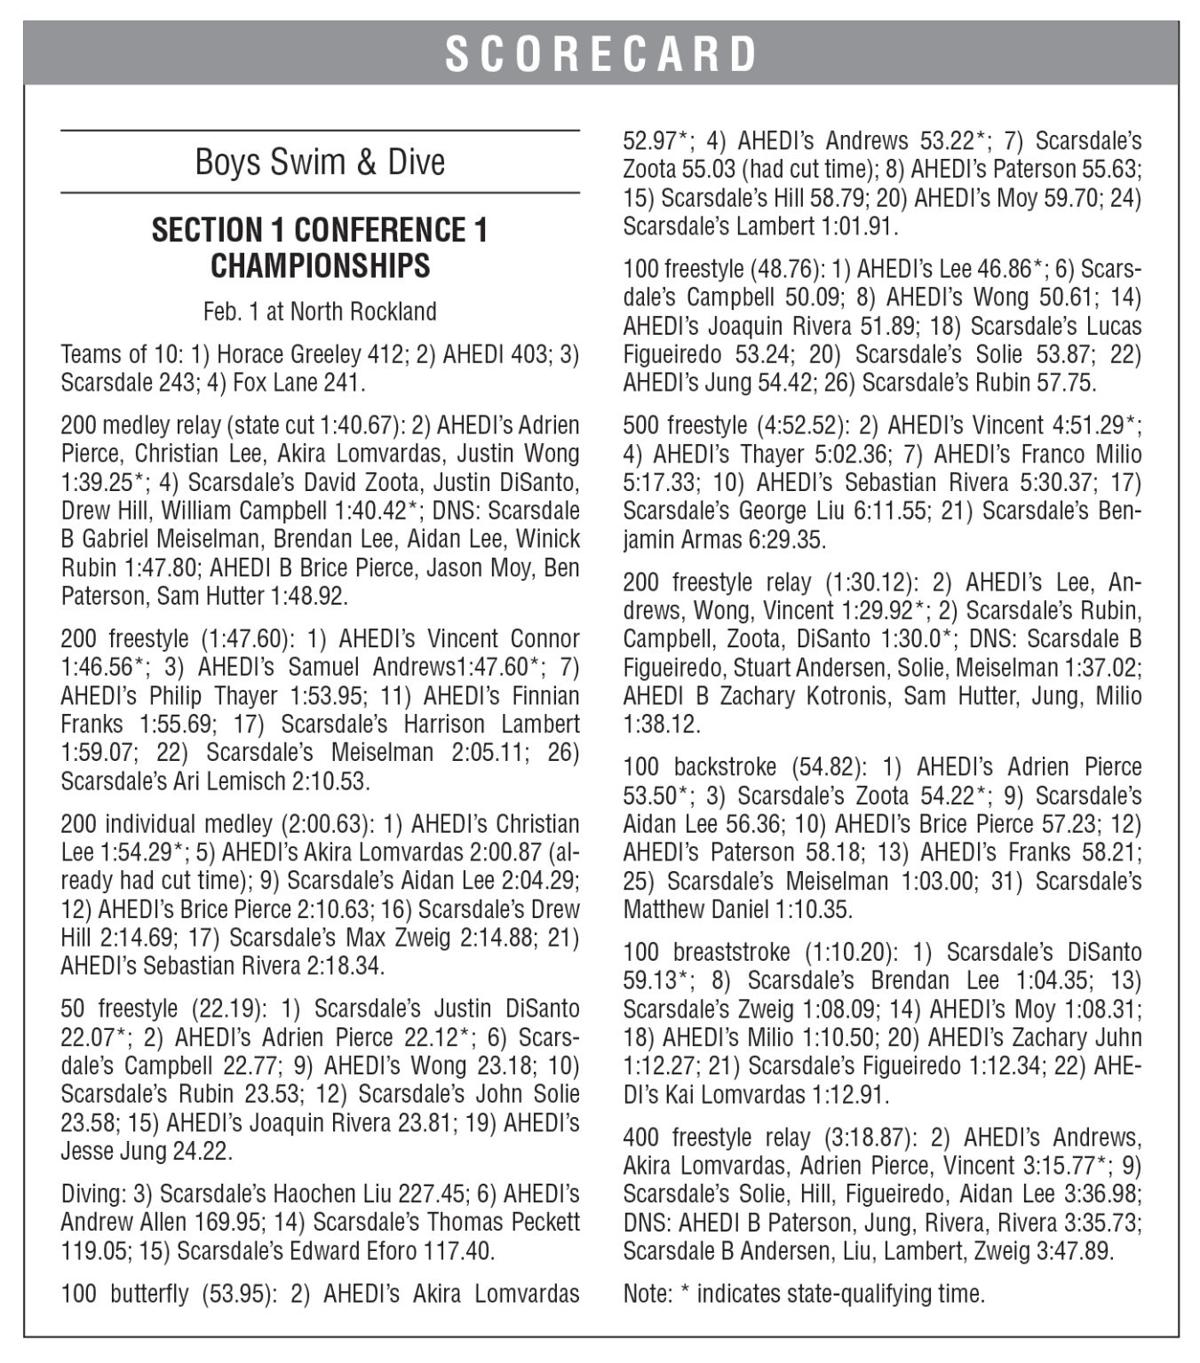 Scarsdale AHEDI swim conference boxscore from 2/7 issue